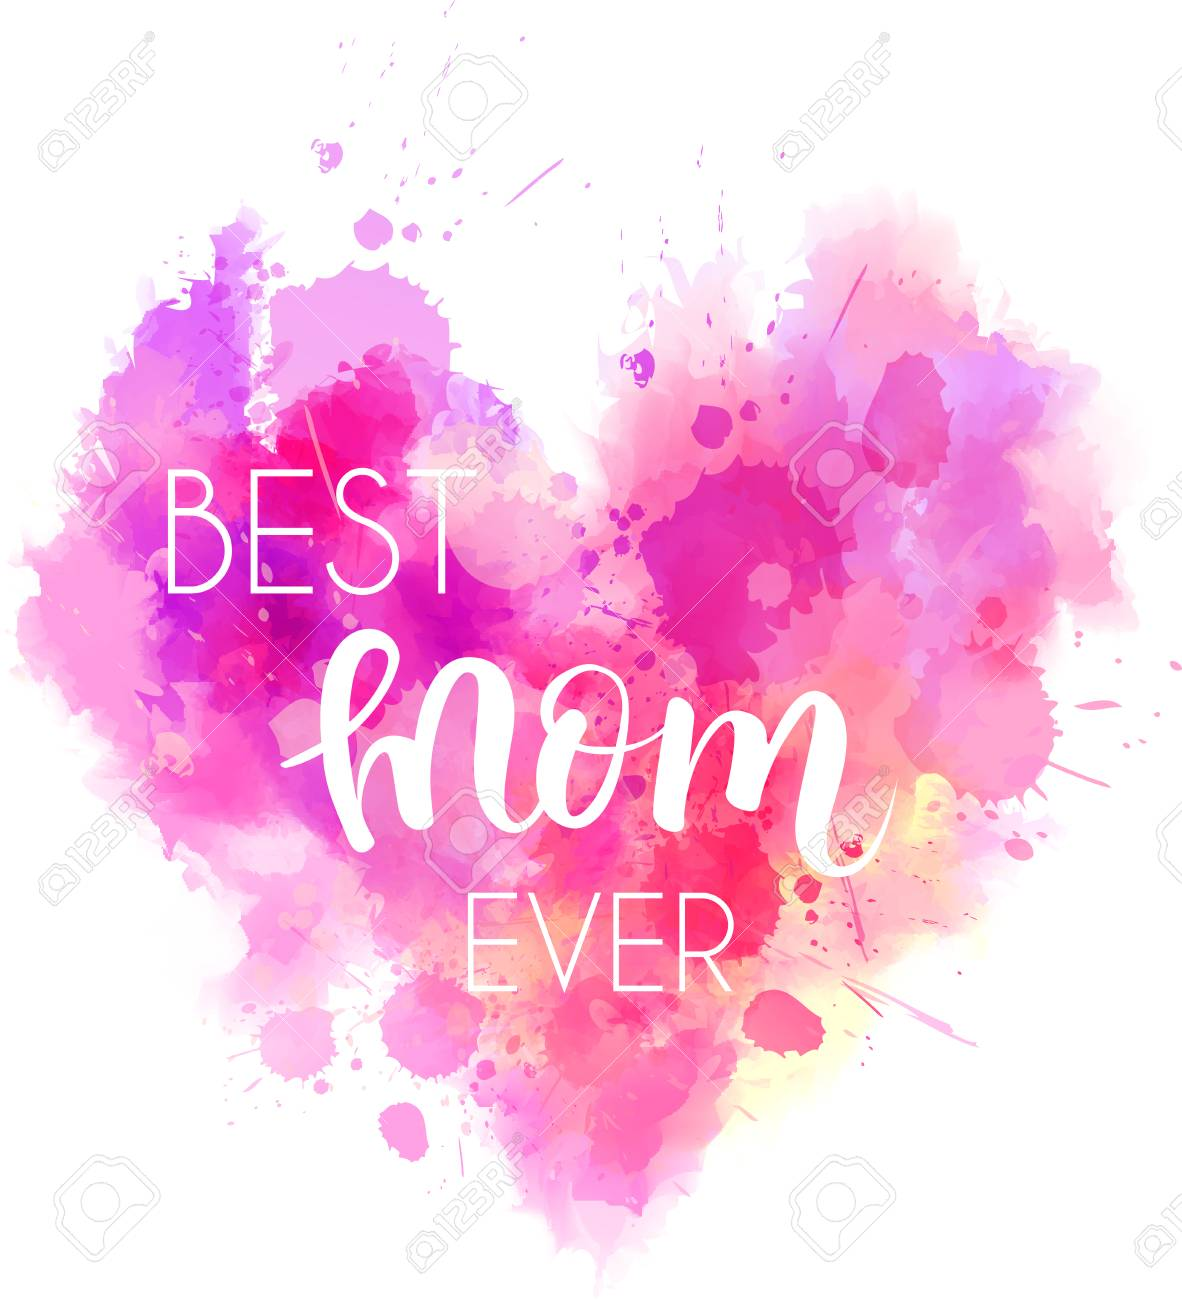 2b708d2529 Vector - Watercolor imitation pink heart with Best mom ever text. Design  element for greeting card, holiday banners, etc.